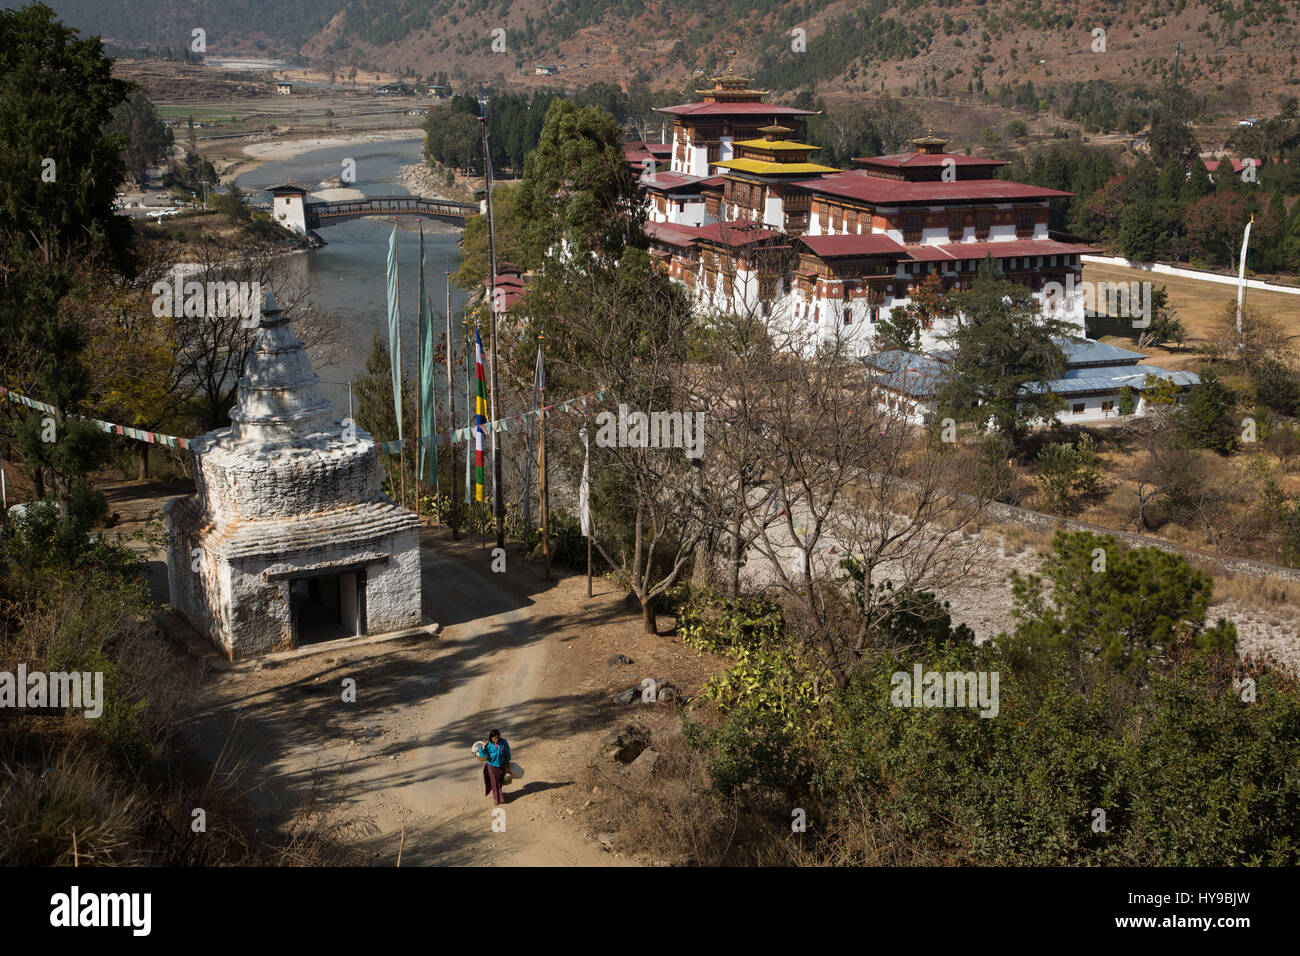 Tibetan-style stupa across the Mo Chhu River from the Punakha Dzong.  Punakha, Bhutan. - Stock Image